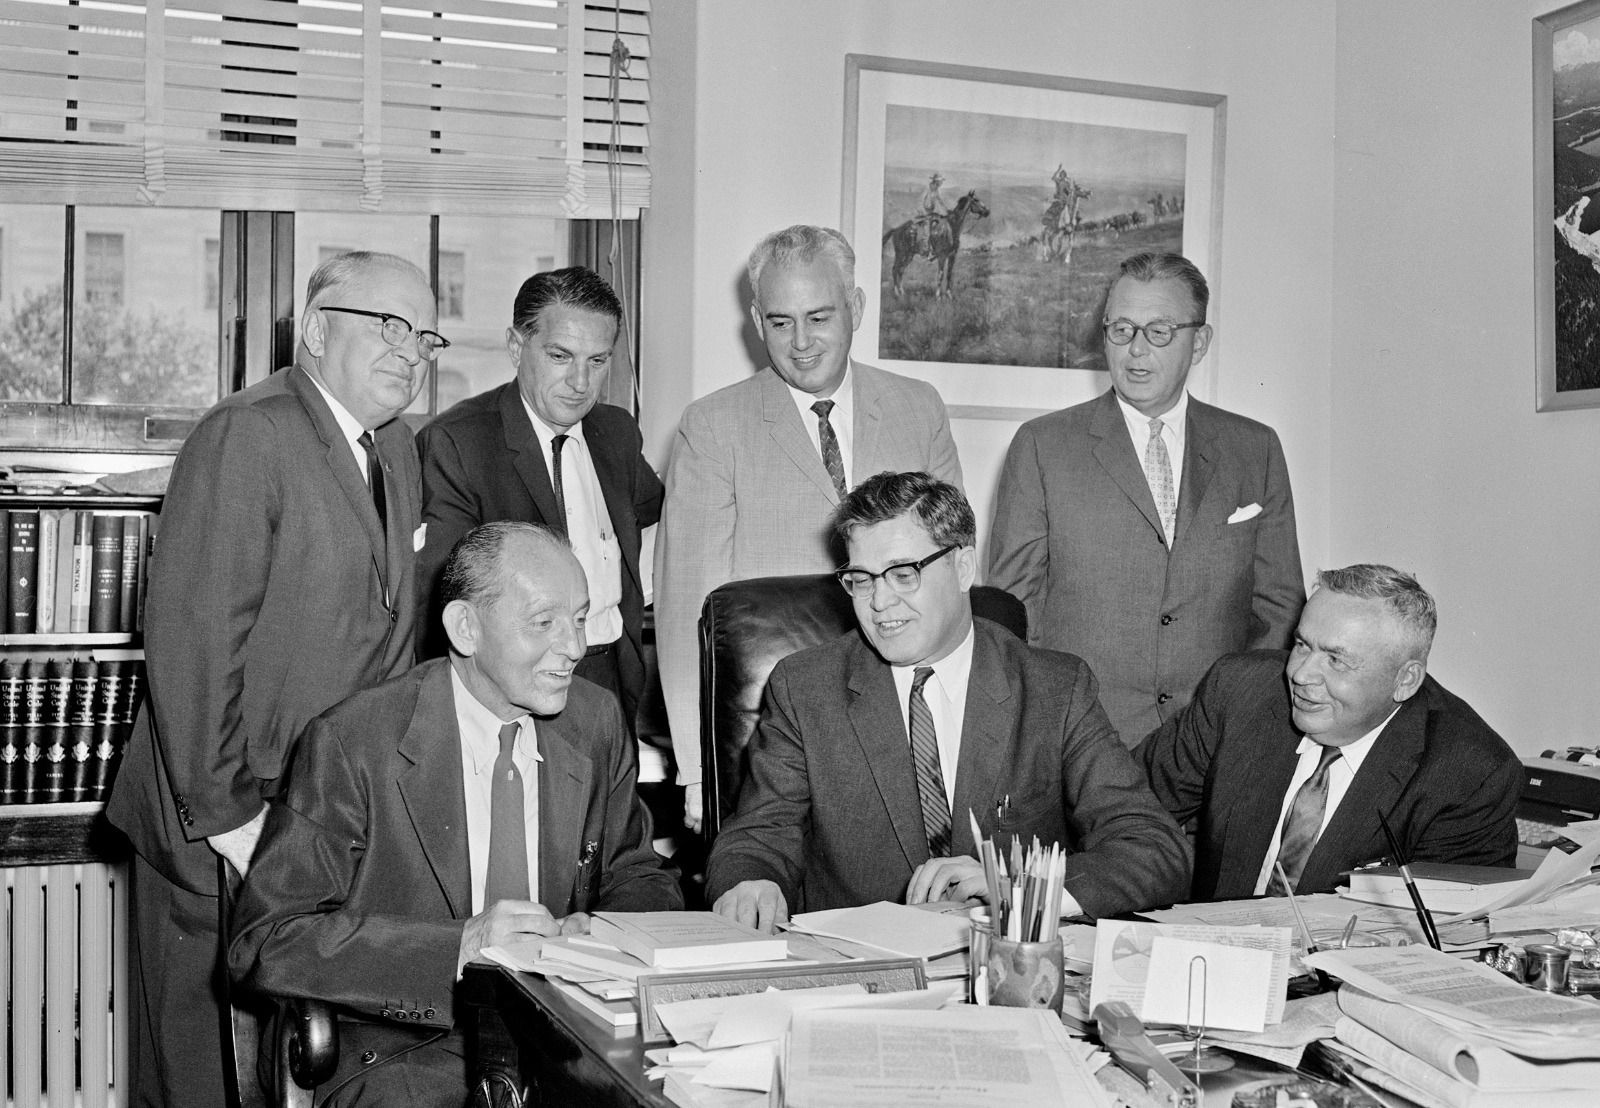 National conservation leaders meet with Metcalf in August 1961 to discuss legislative strategy regarding the proposed national wilderness preservation system bill.  Pictured, left to right, standing, Alden J. Erskin, president of the Izaak Walton League; Phil Schneider, president of the International Association of Game, Fish and Conservation Commissioners; Tom Kimball, executive director of the National Wildlife Federation; Carl W. Buchheister, president of the National Audubon Society; and left to right, seated, C.R. Gutermuth, chairman of the Natural Resources Council of America; Metcalf; and Ira N. Gabrielson, president of the Wildlife Management Institute.